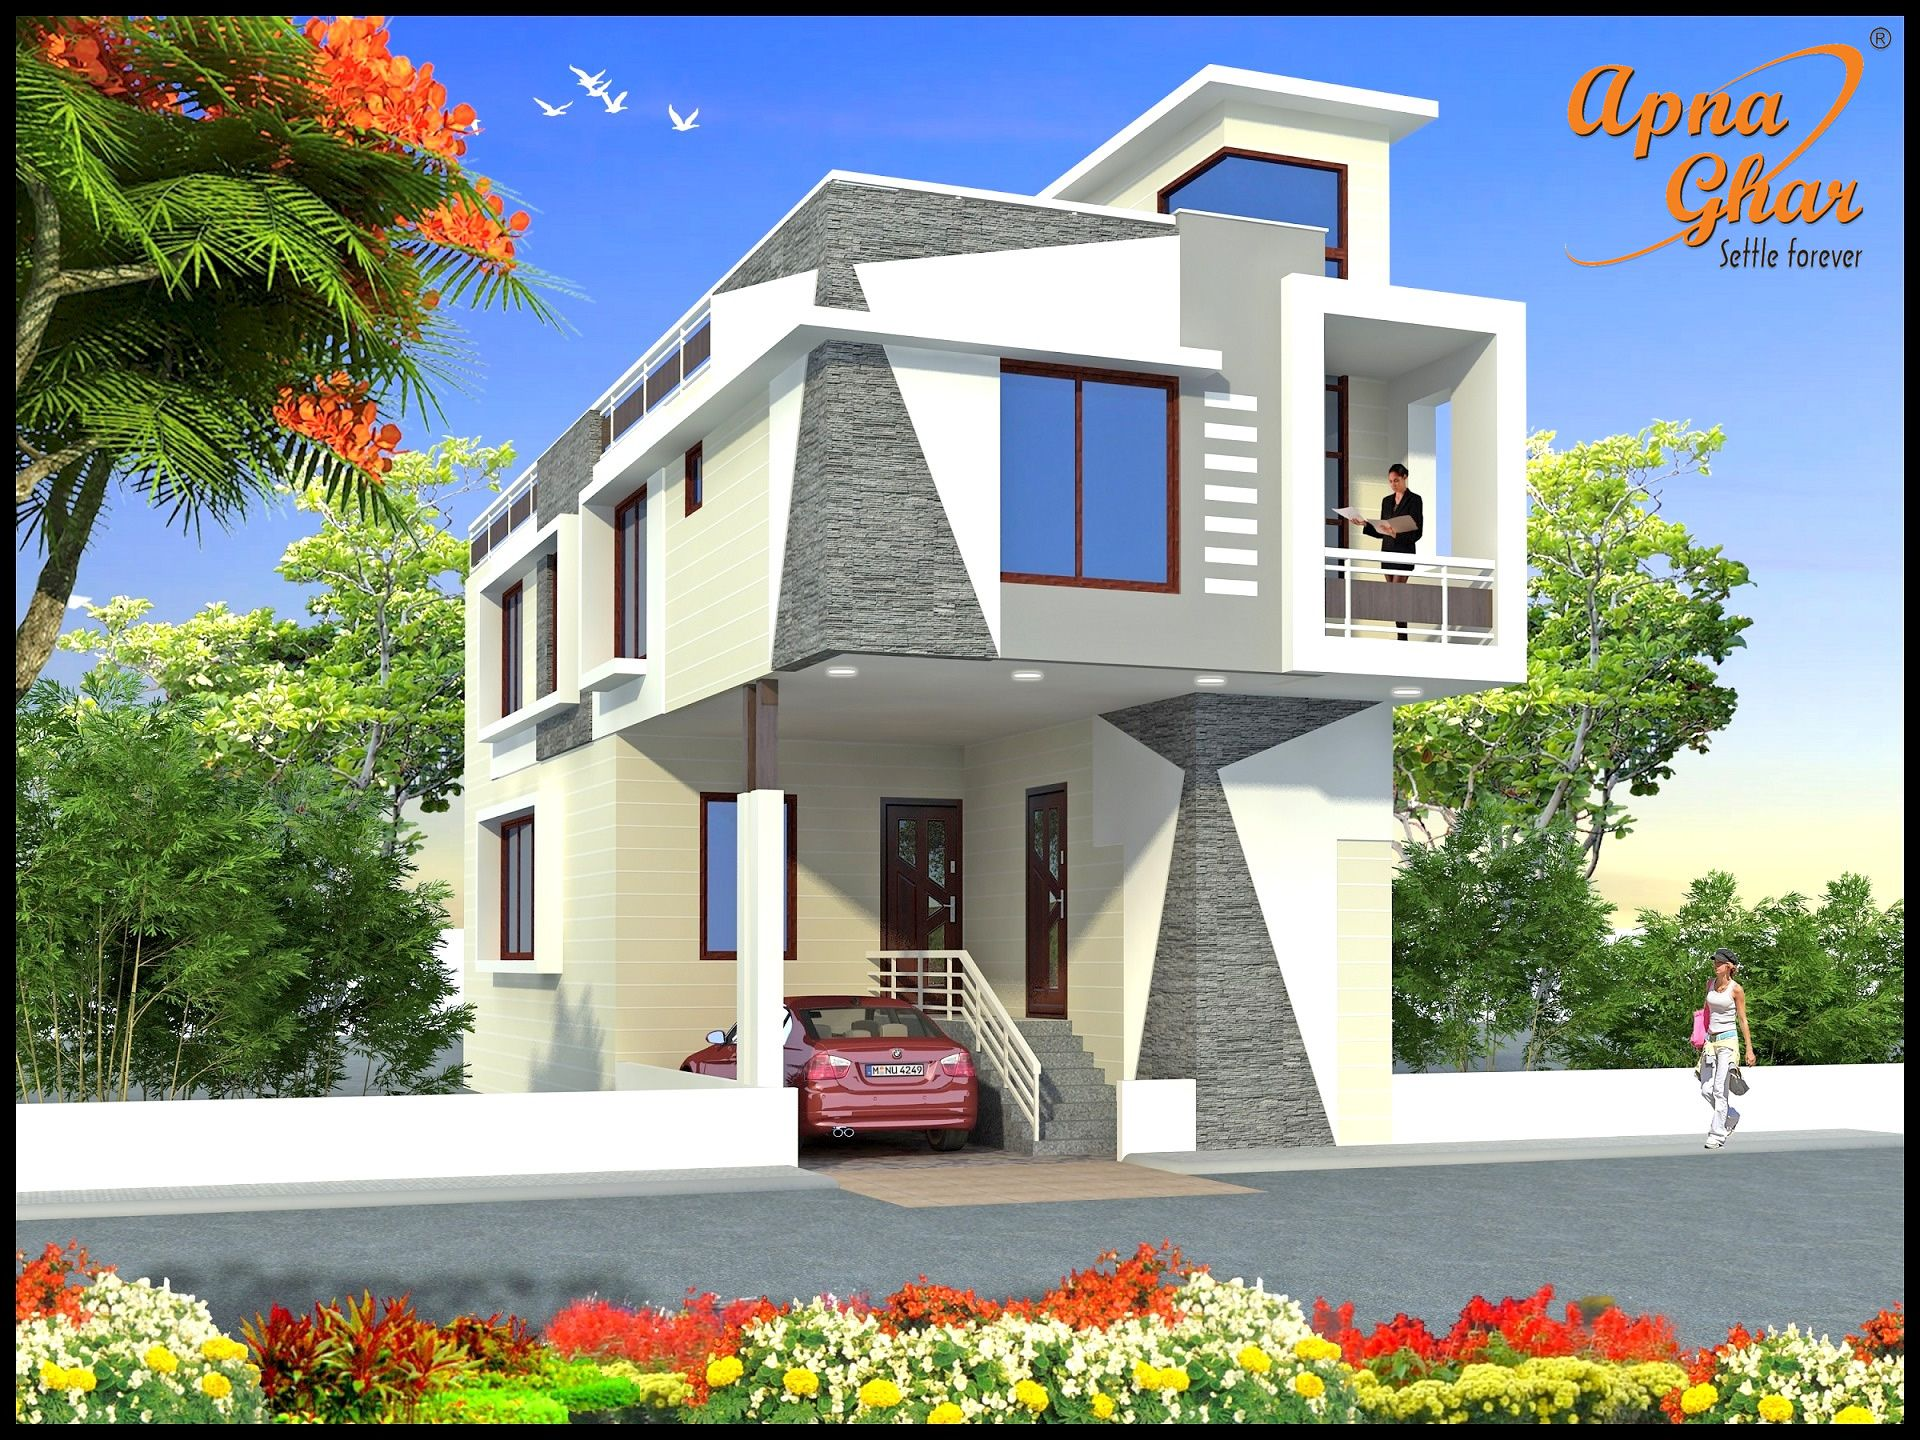 Delightful 8 M Wide Home Designs Part - 11: 4 Bedrooms Duplex (2 Floors) Home.Area: 90m2 (6m X 15m).Click Link  (http://www.apnaghar.co.in/pre-design-house-plan-ag-page-63.aspx) To View  Free Floor ...